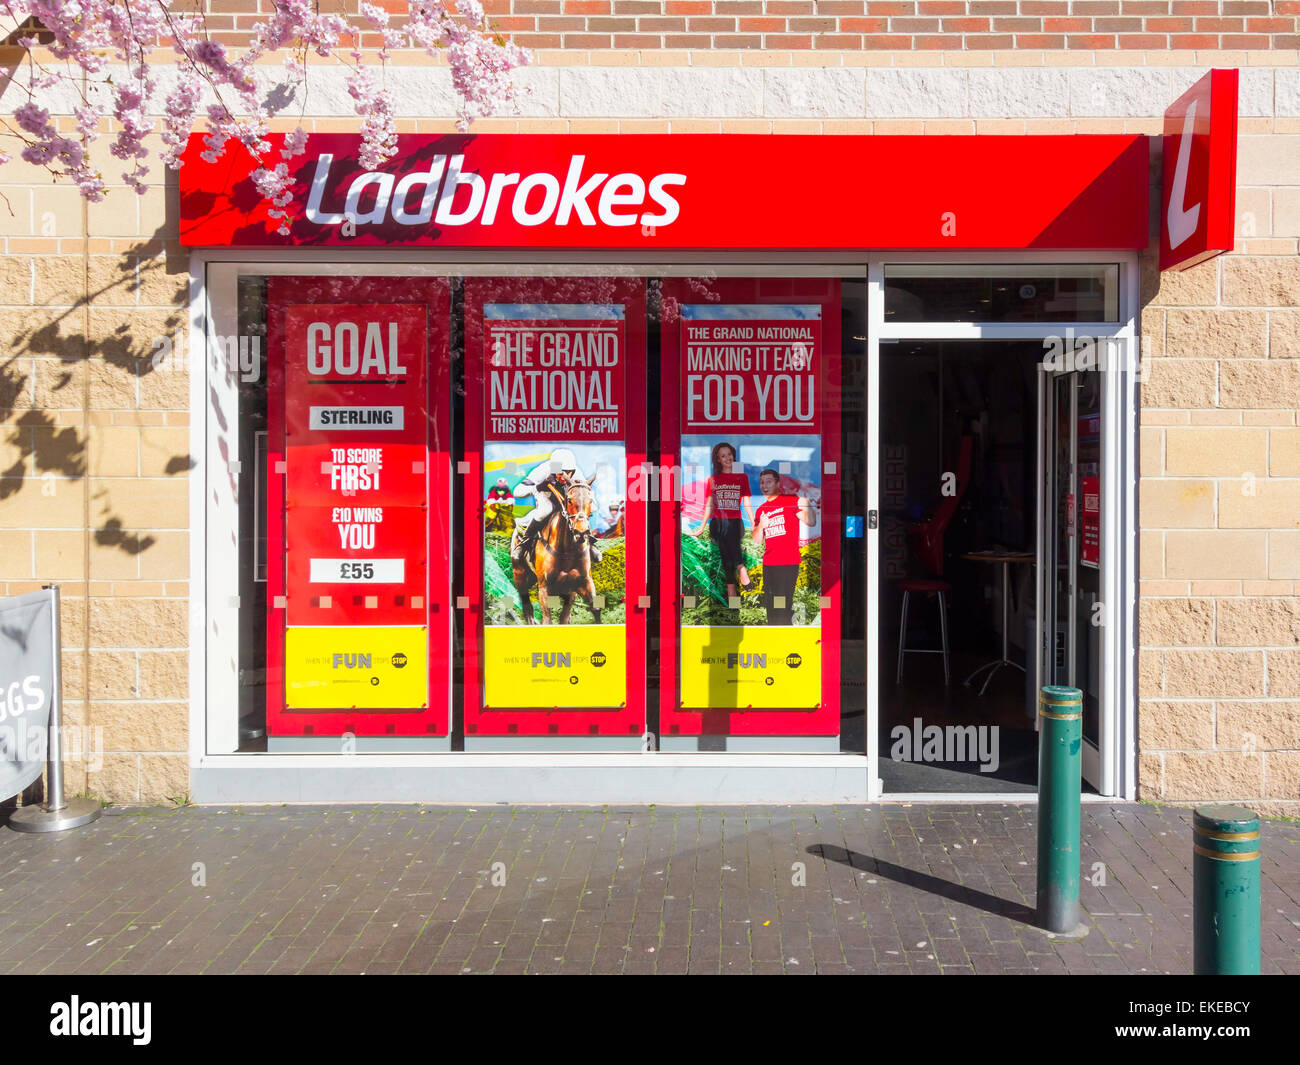 ladbrokes betting shops ltd